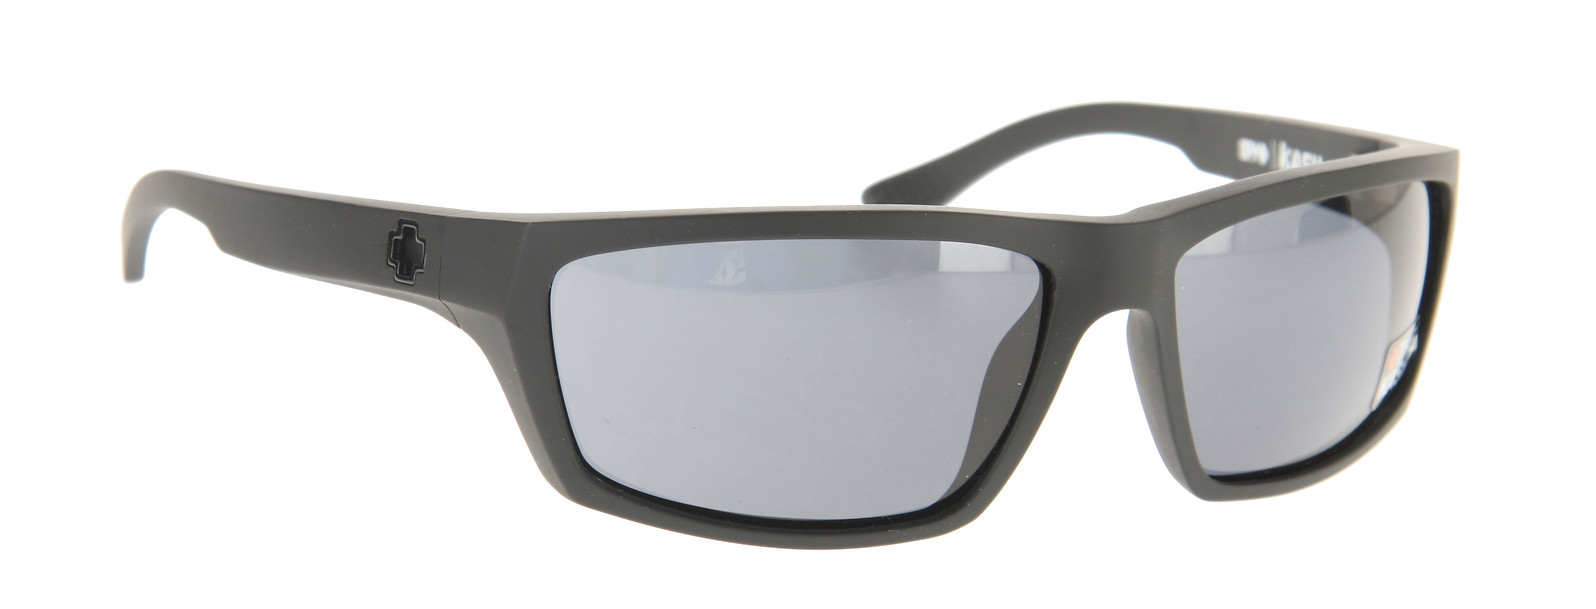 030133cd66d Spy Optic Spy Kash Sunglasses Matte Black Grey Lens - Reviews ...